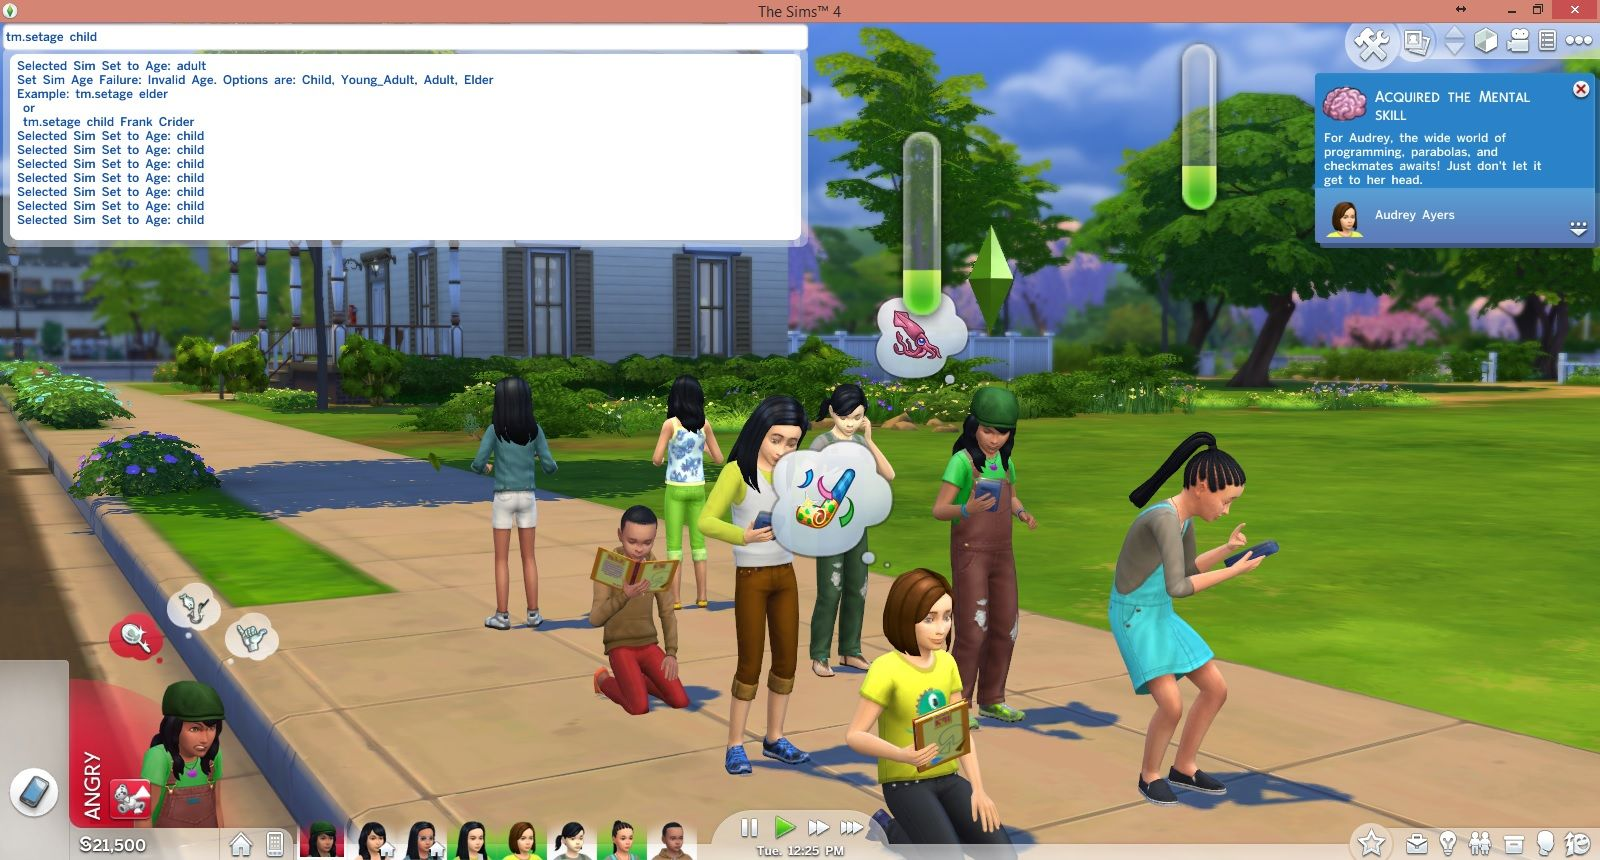 Sims 4 dating mod